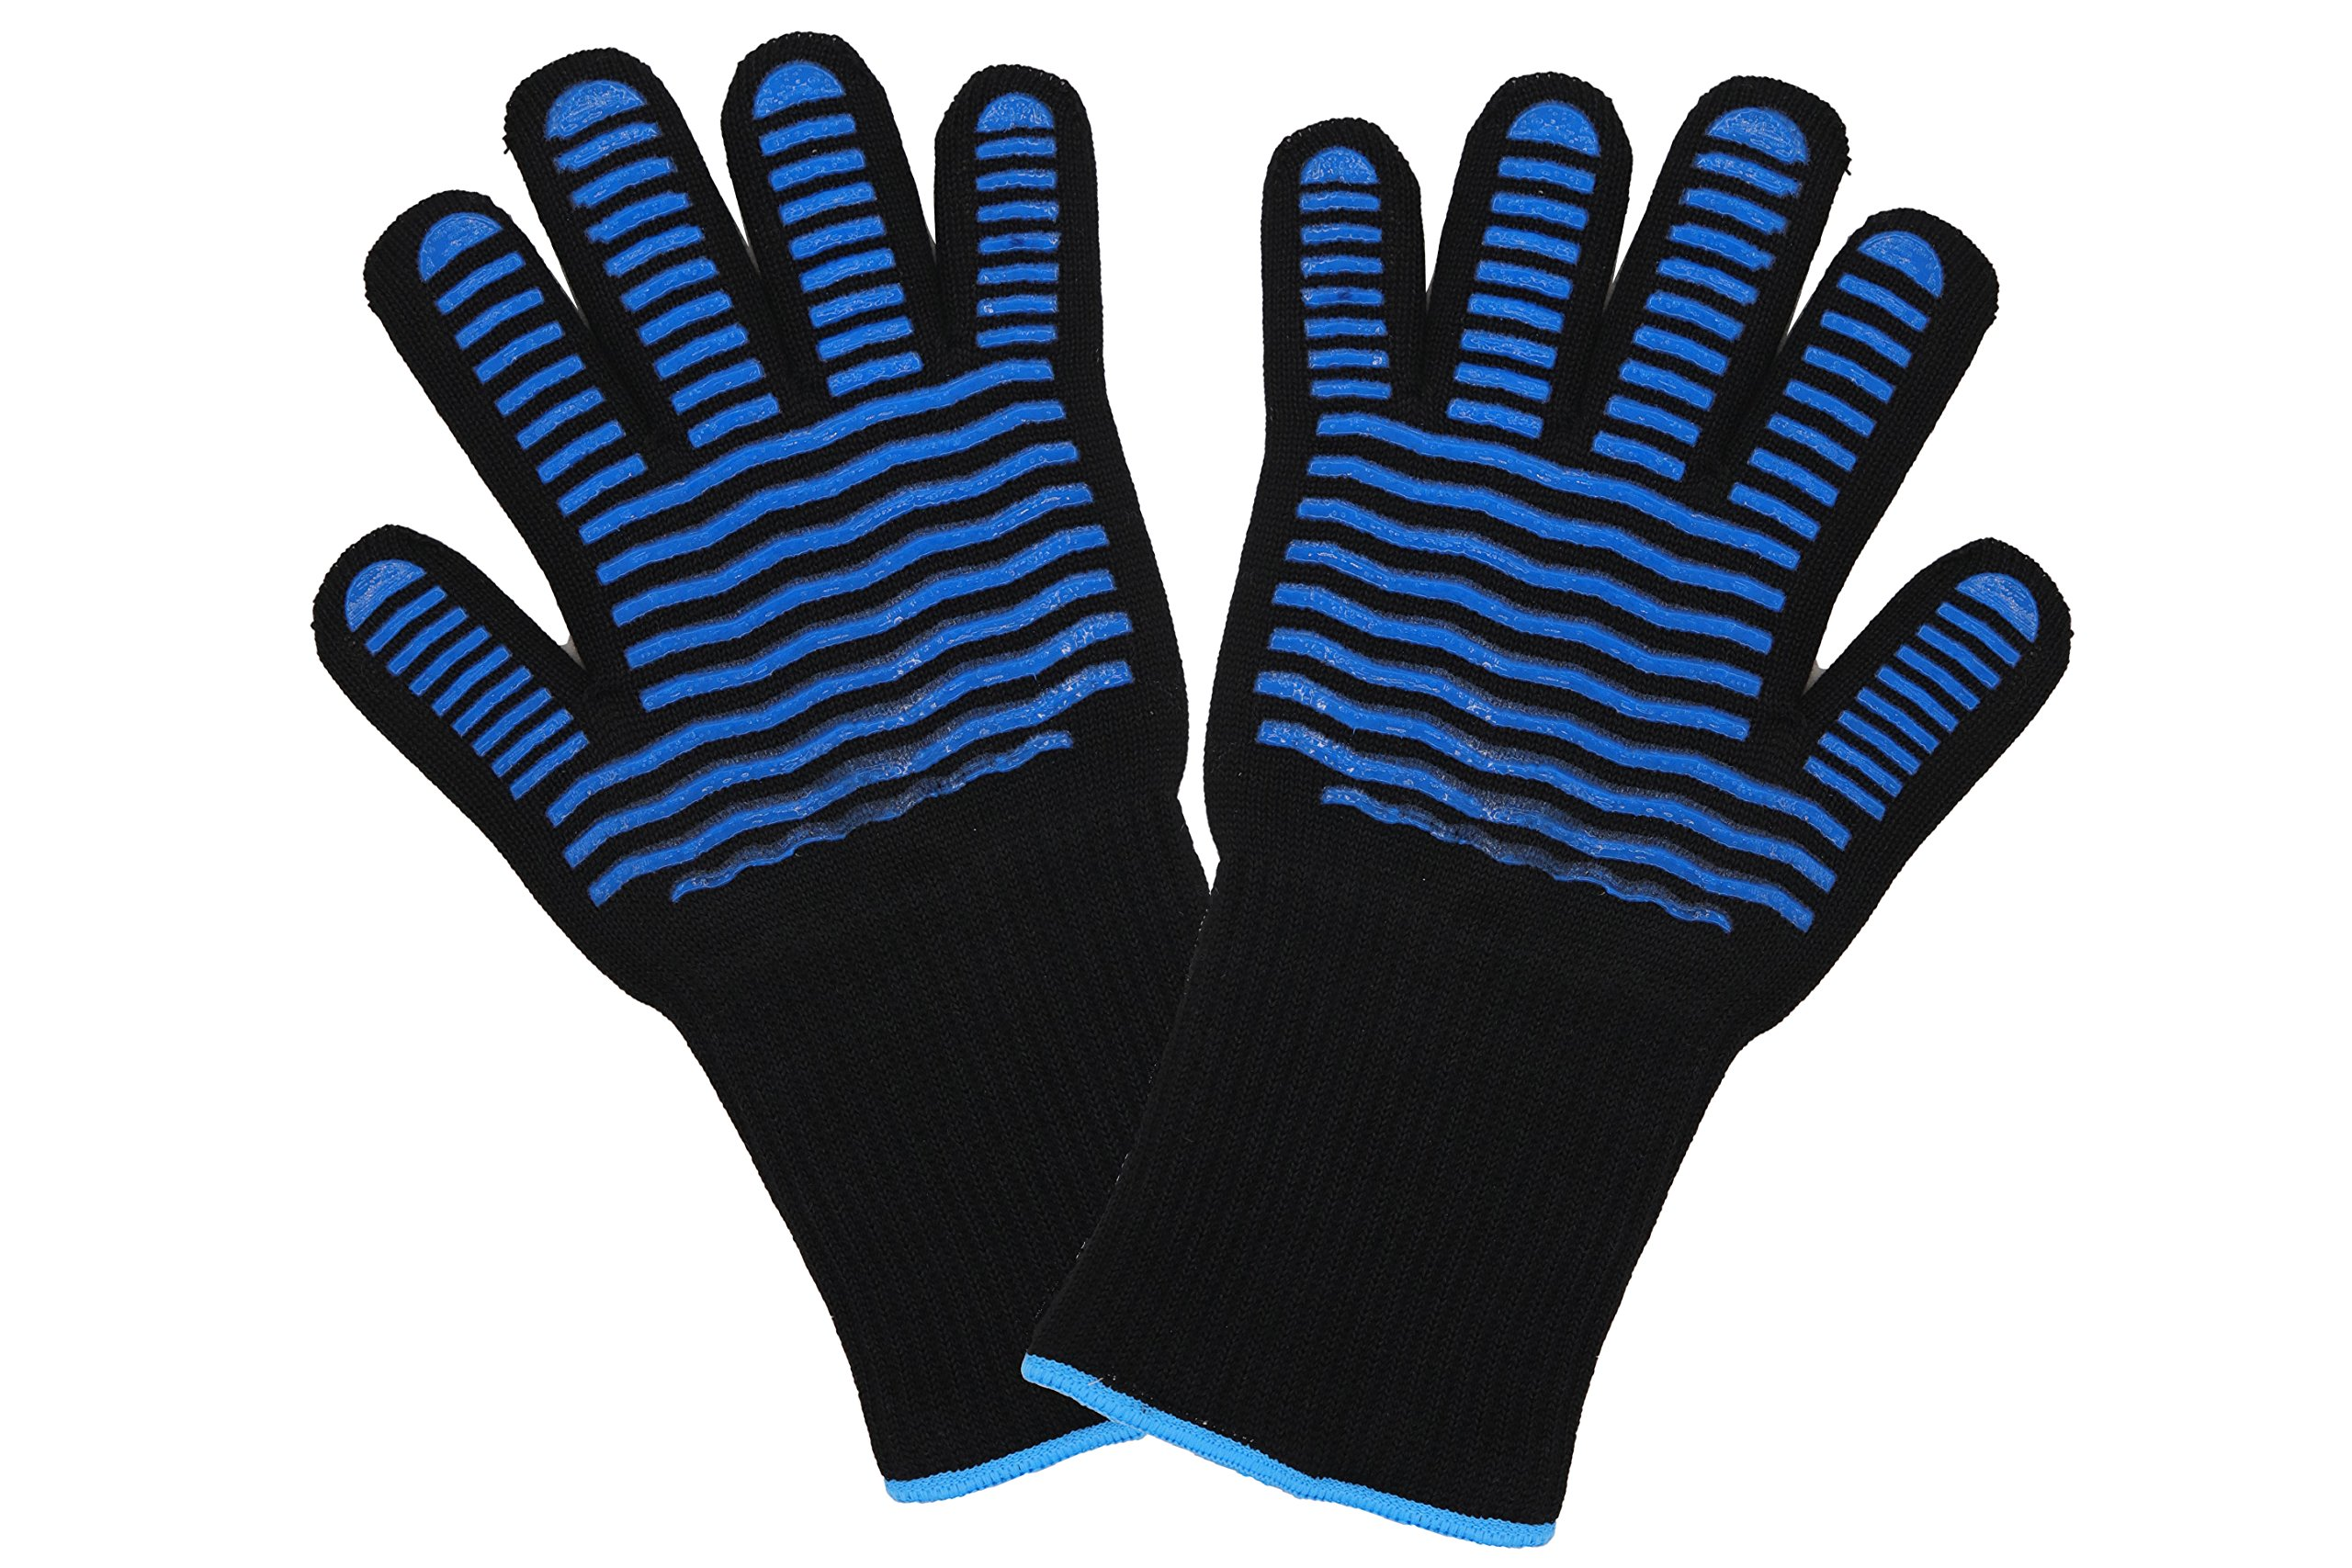 ETHDA Extreme Heat Resistant 932°F Gloves, Cut Level 3 Protection Mitts, Good for Cooking,Fireplace,Oven,BBQ,Grilling,Baking,Smoker,High Performance,Protect Hands,Mother's Day Gift 1 Pair (Long Cuff) by Ethda